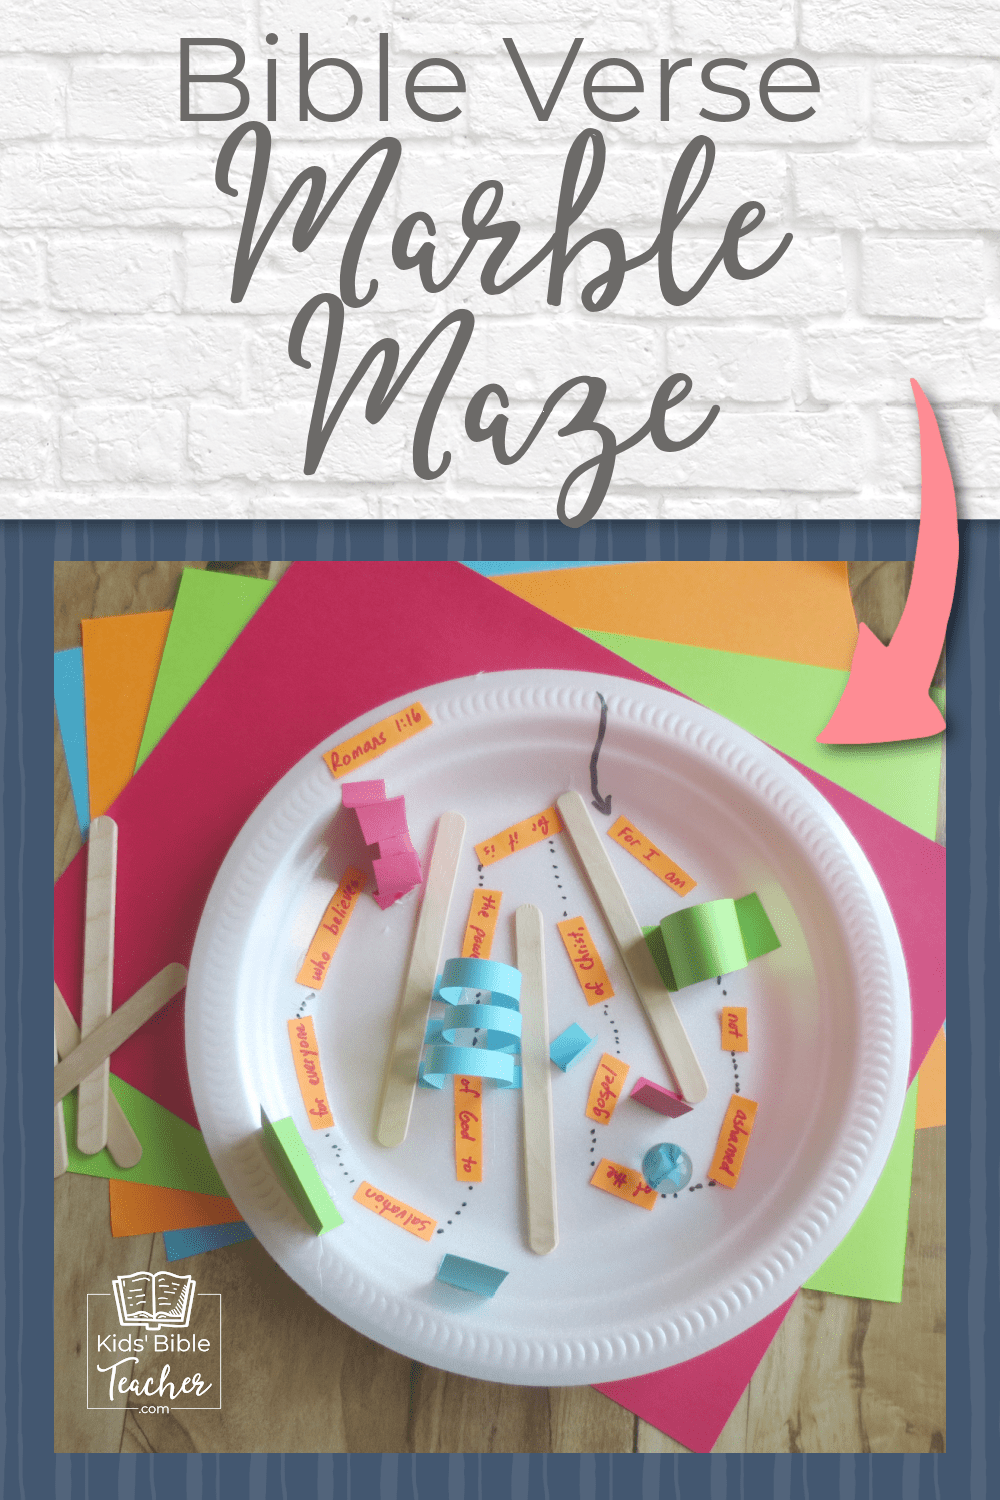 Looking for a super-fun, Sunday School craft that boys and girls will love? Try this Paper Plate Bible Verse Marble Maze. - This is such a cool idea!